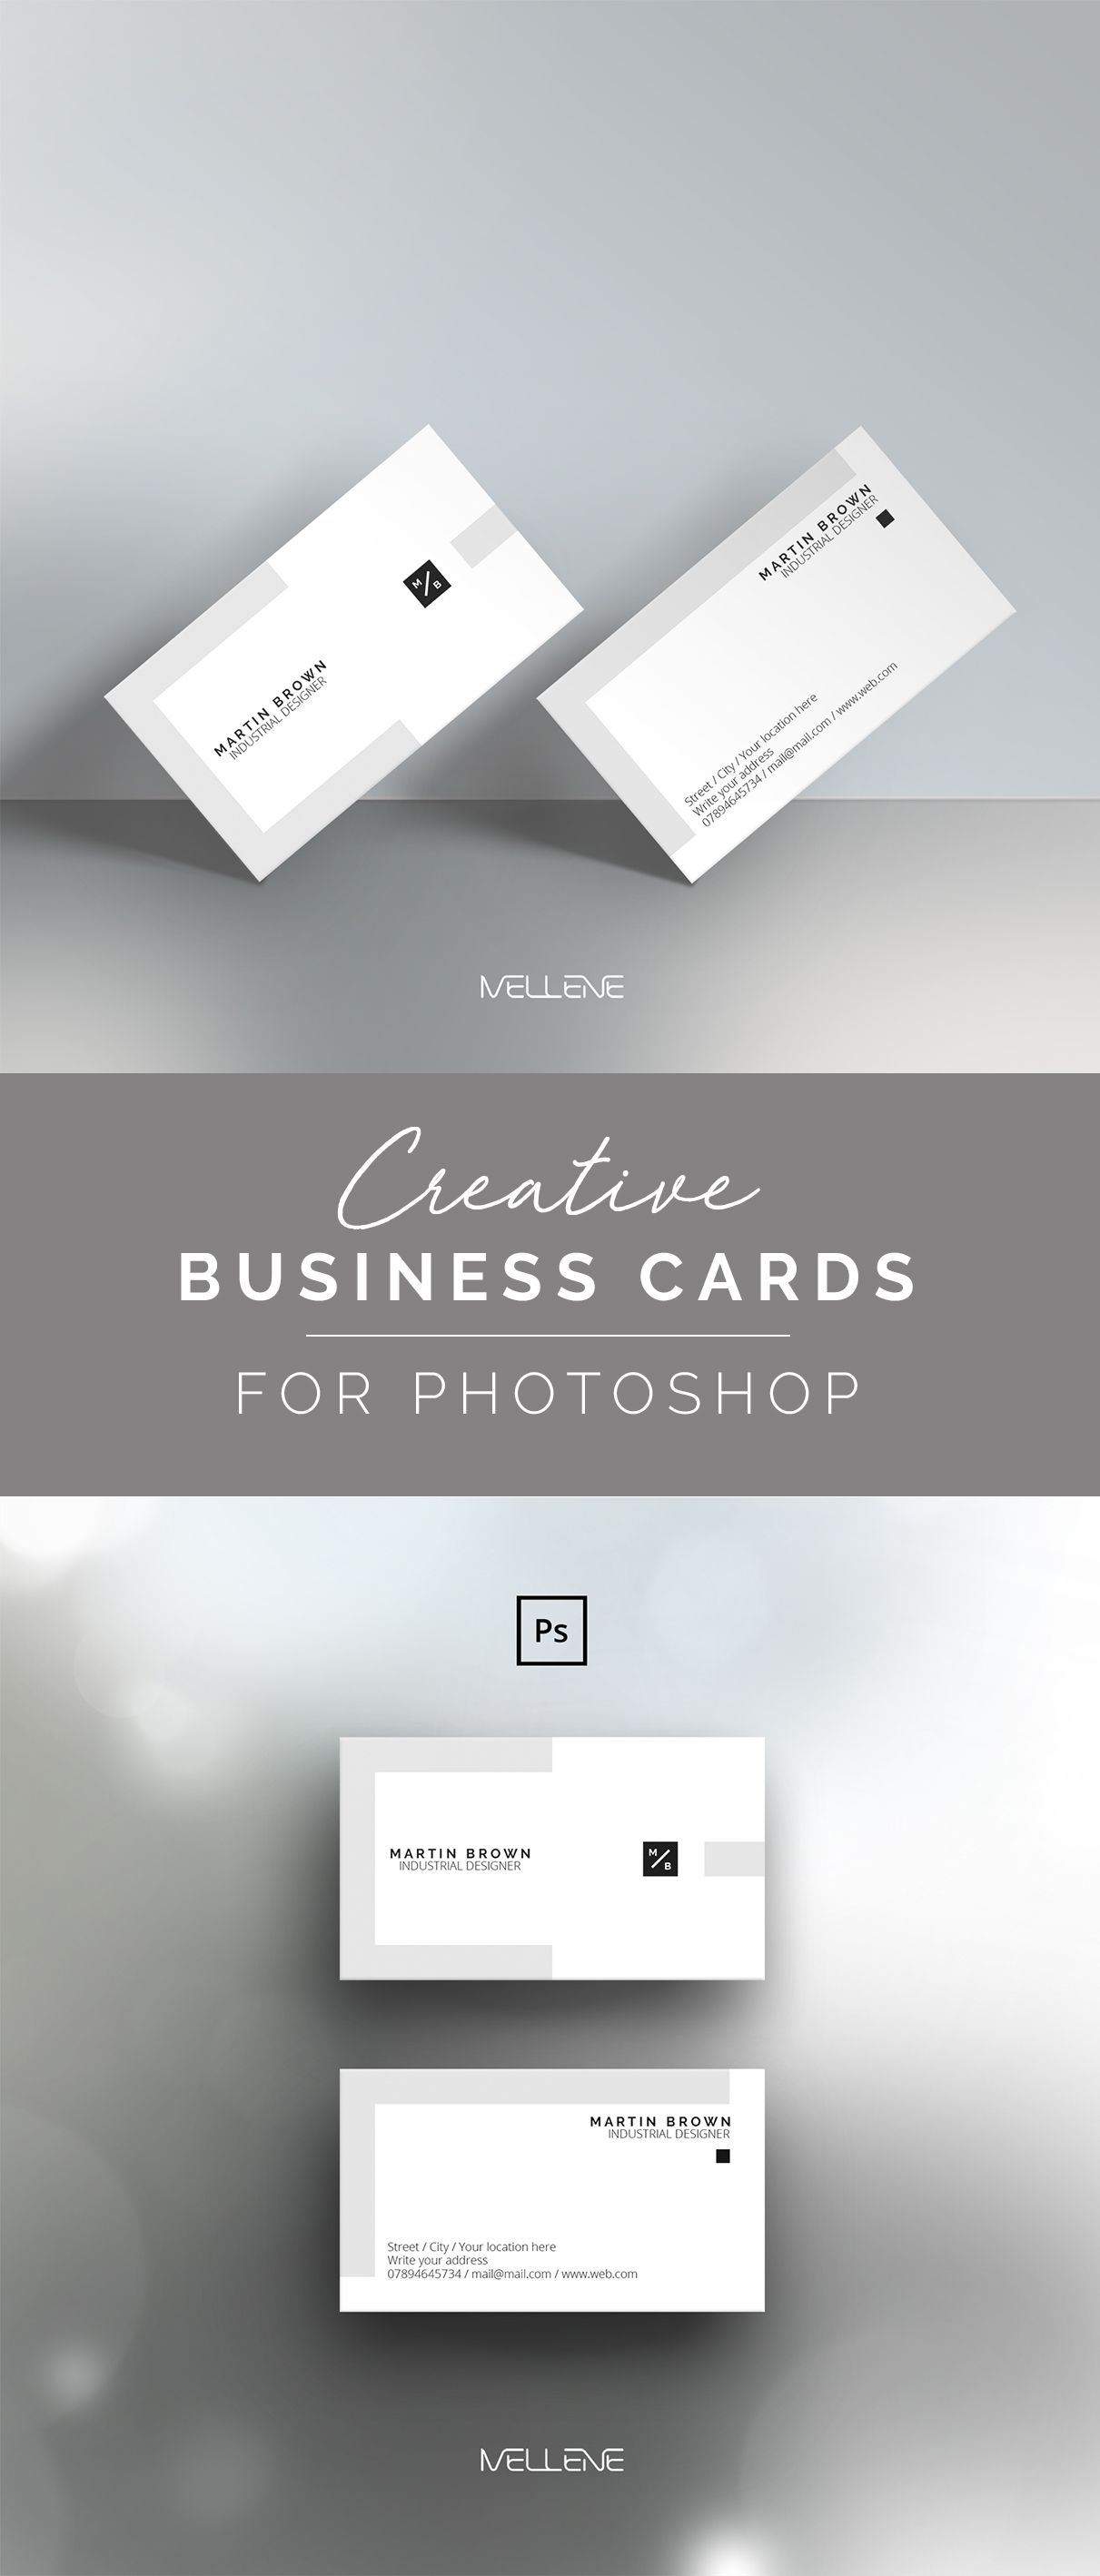 Business Card Template For Adobe Photoshop Psd File Minimalist Clean Elegant Double Sided Design Fully Adjustable Business Card Design Minimal Minimalist Business Cards Business Card Template